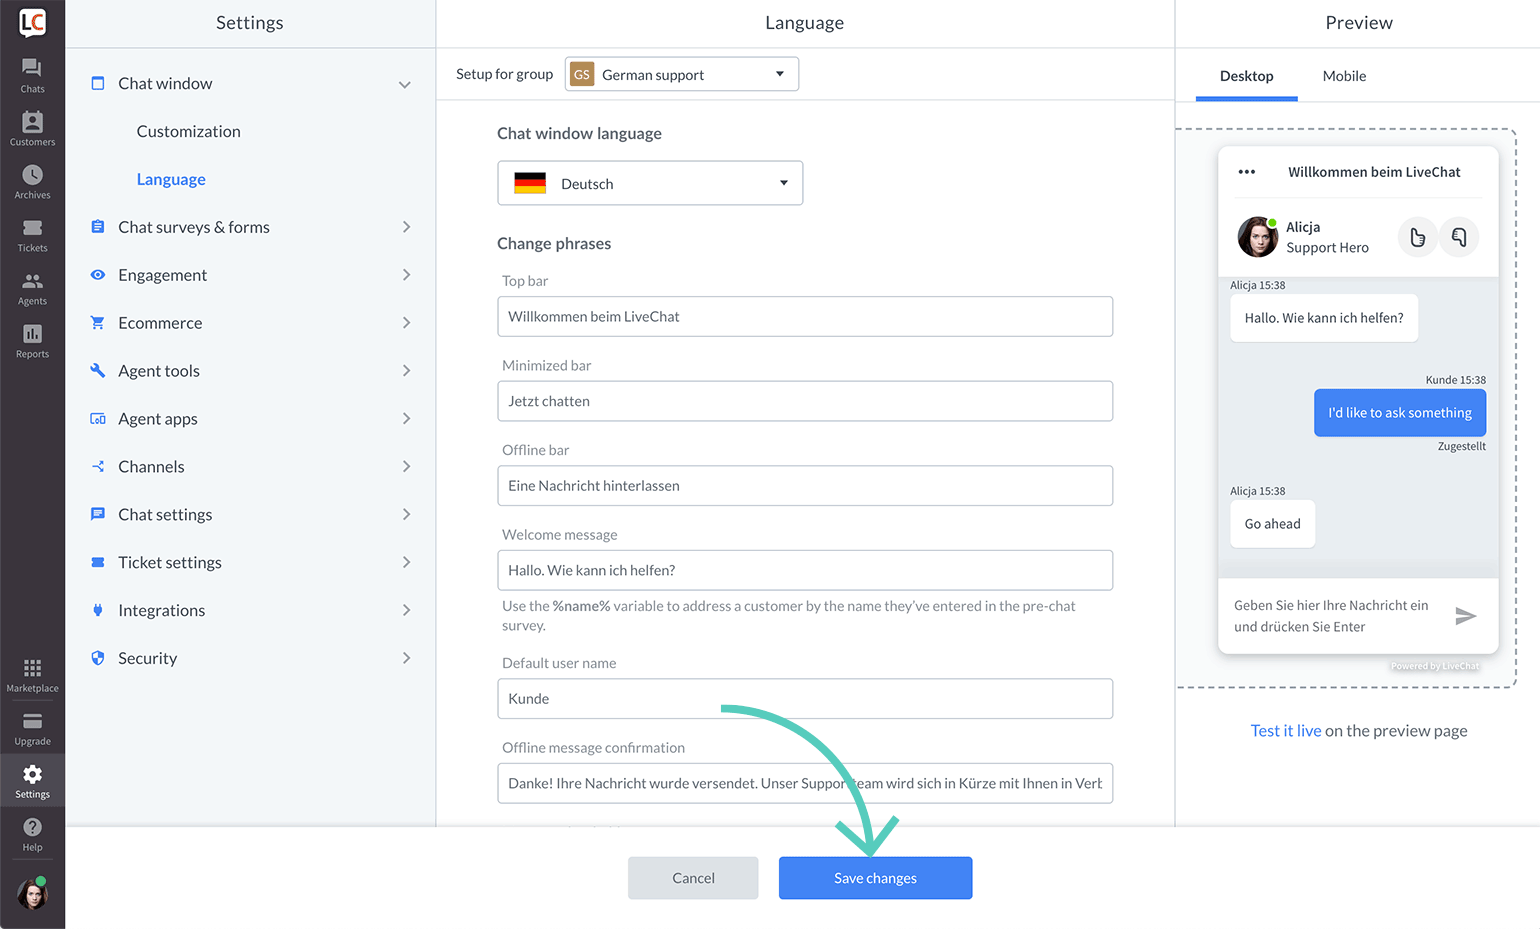 Save changes made to a group language settings